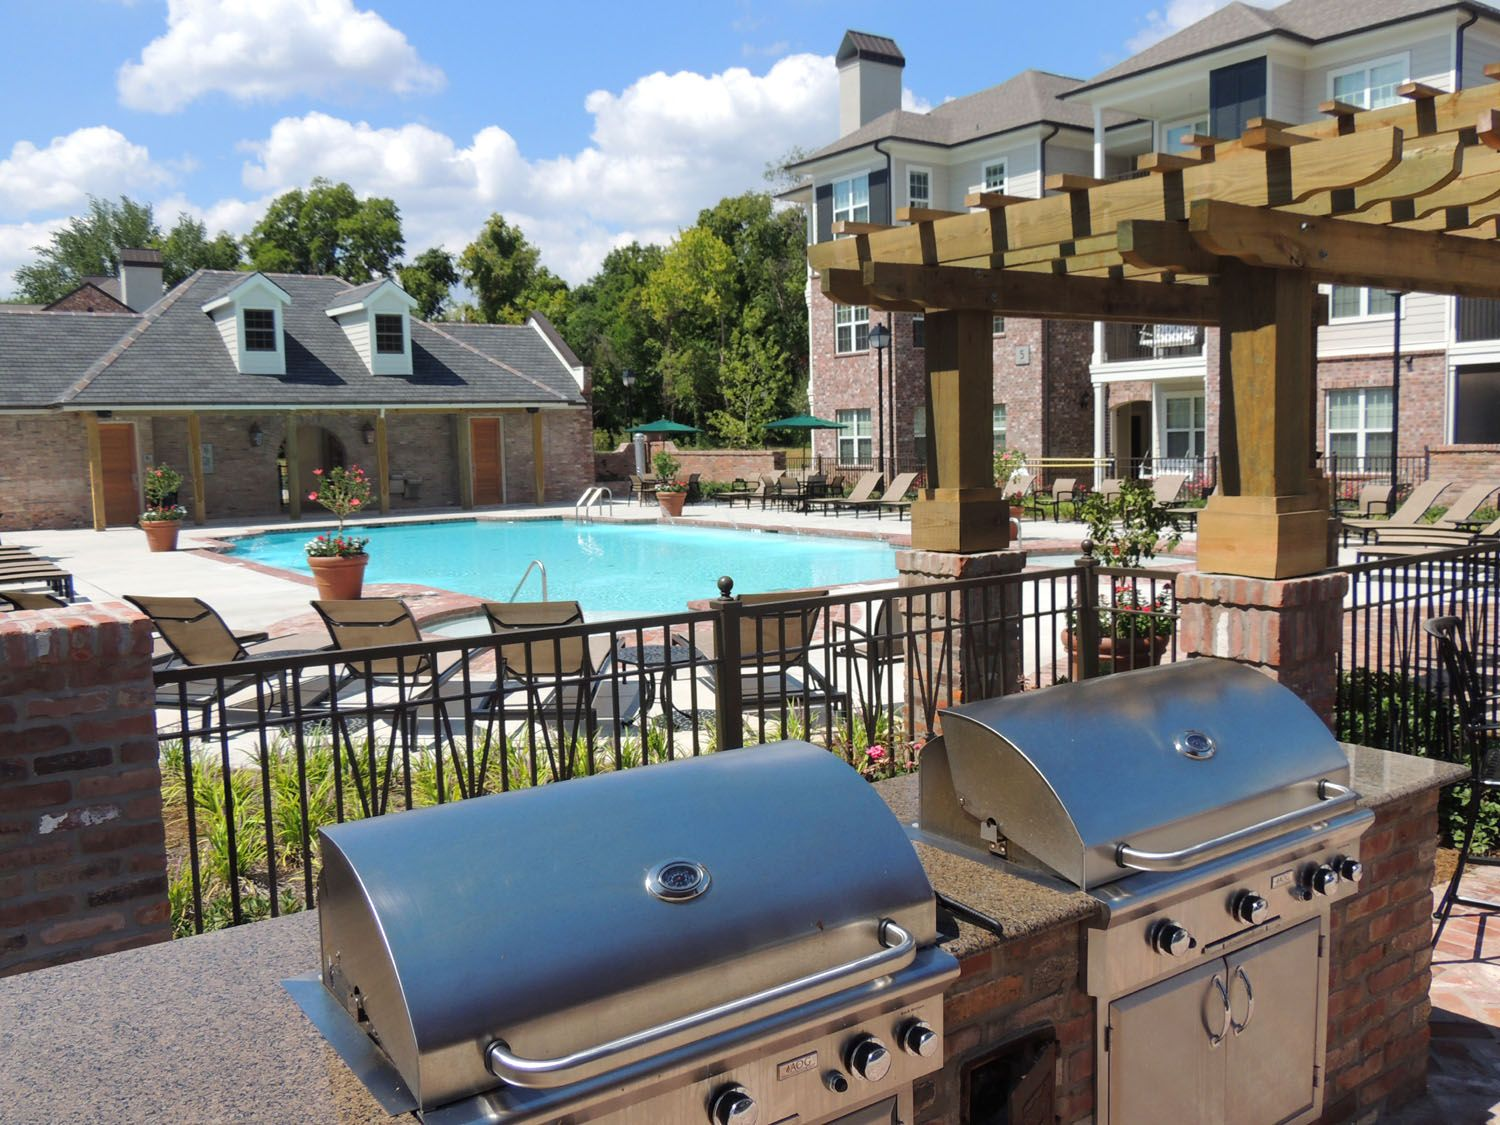 Coates Bluff outdoor cooking area by pool Coates Bluff Luxury